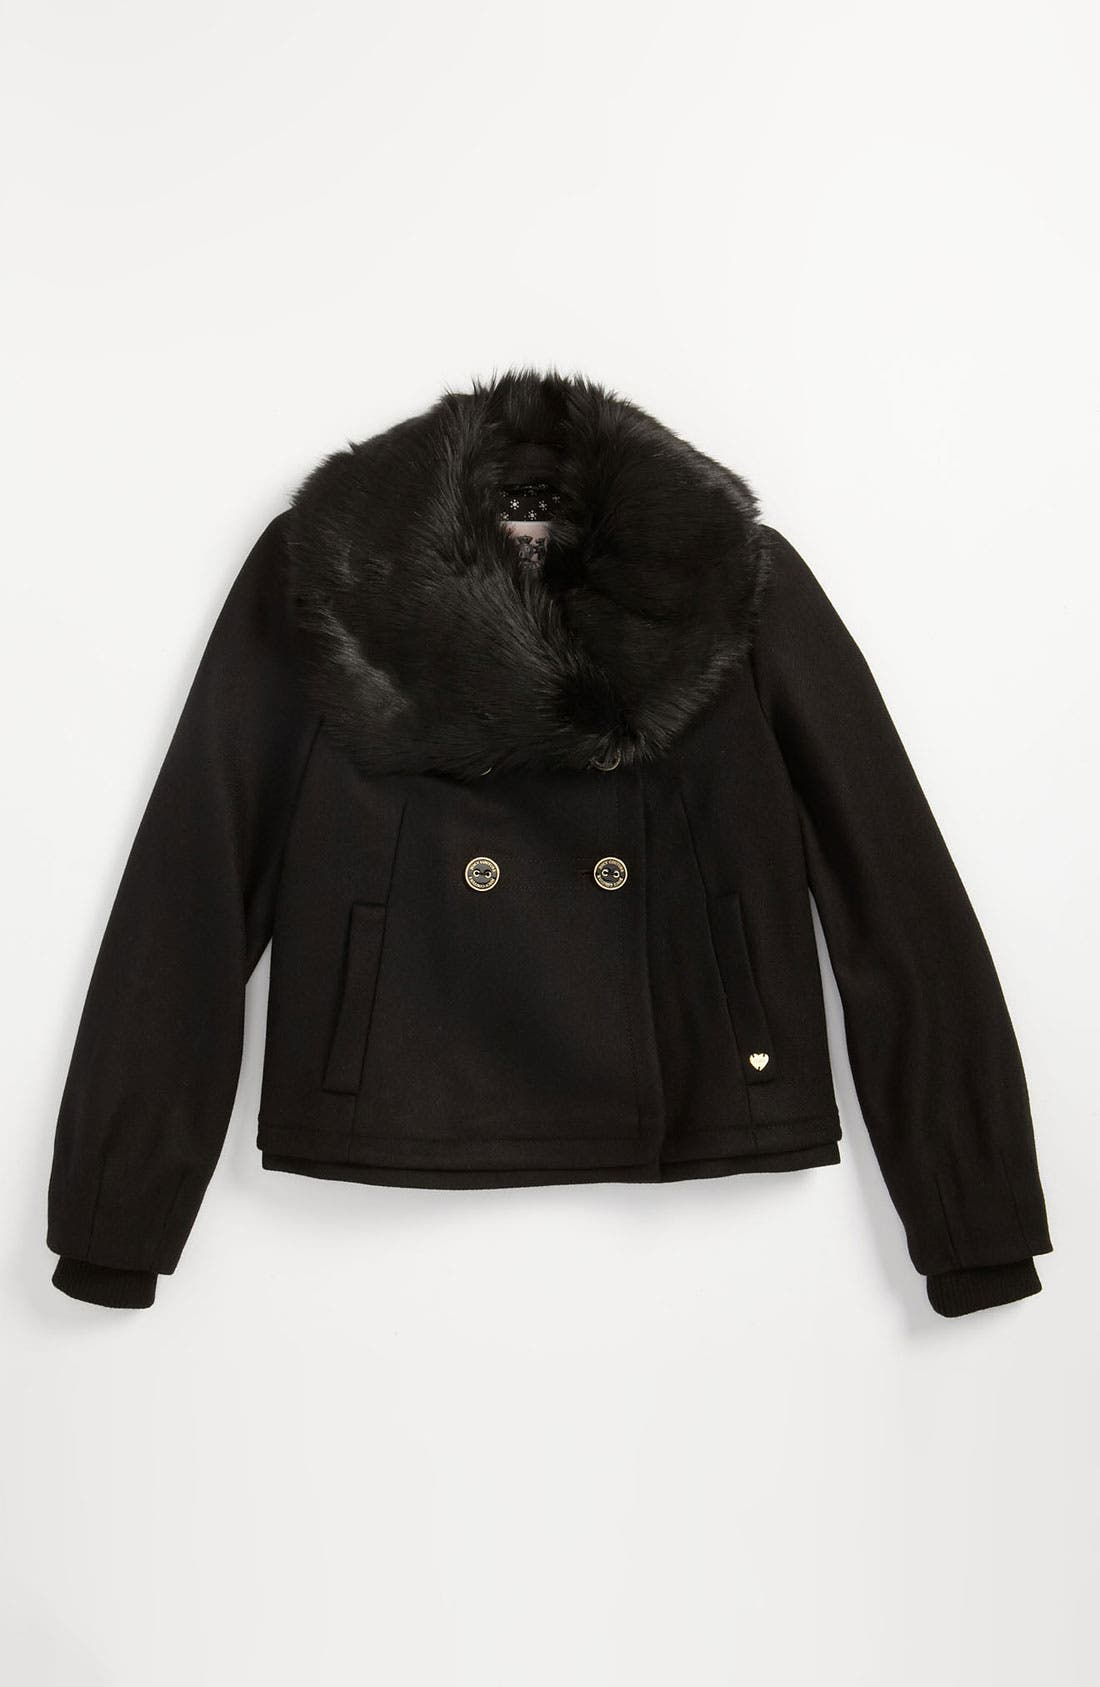 Alternate Image 1 Selected - Juicy Couture Faux Fur Collar Jacket (Little Girls & Big Girls)